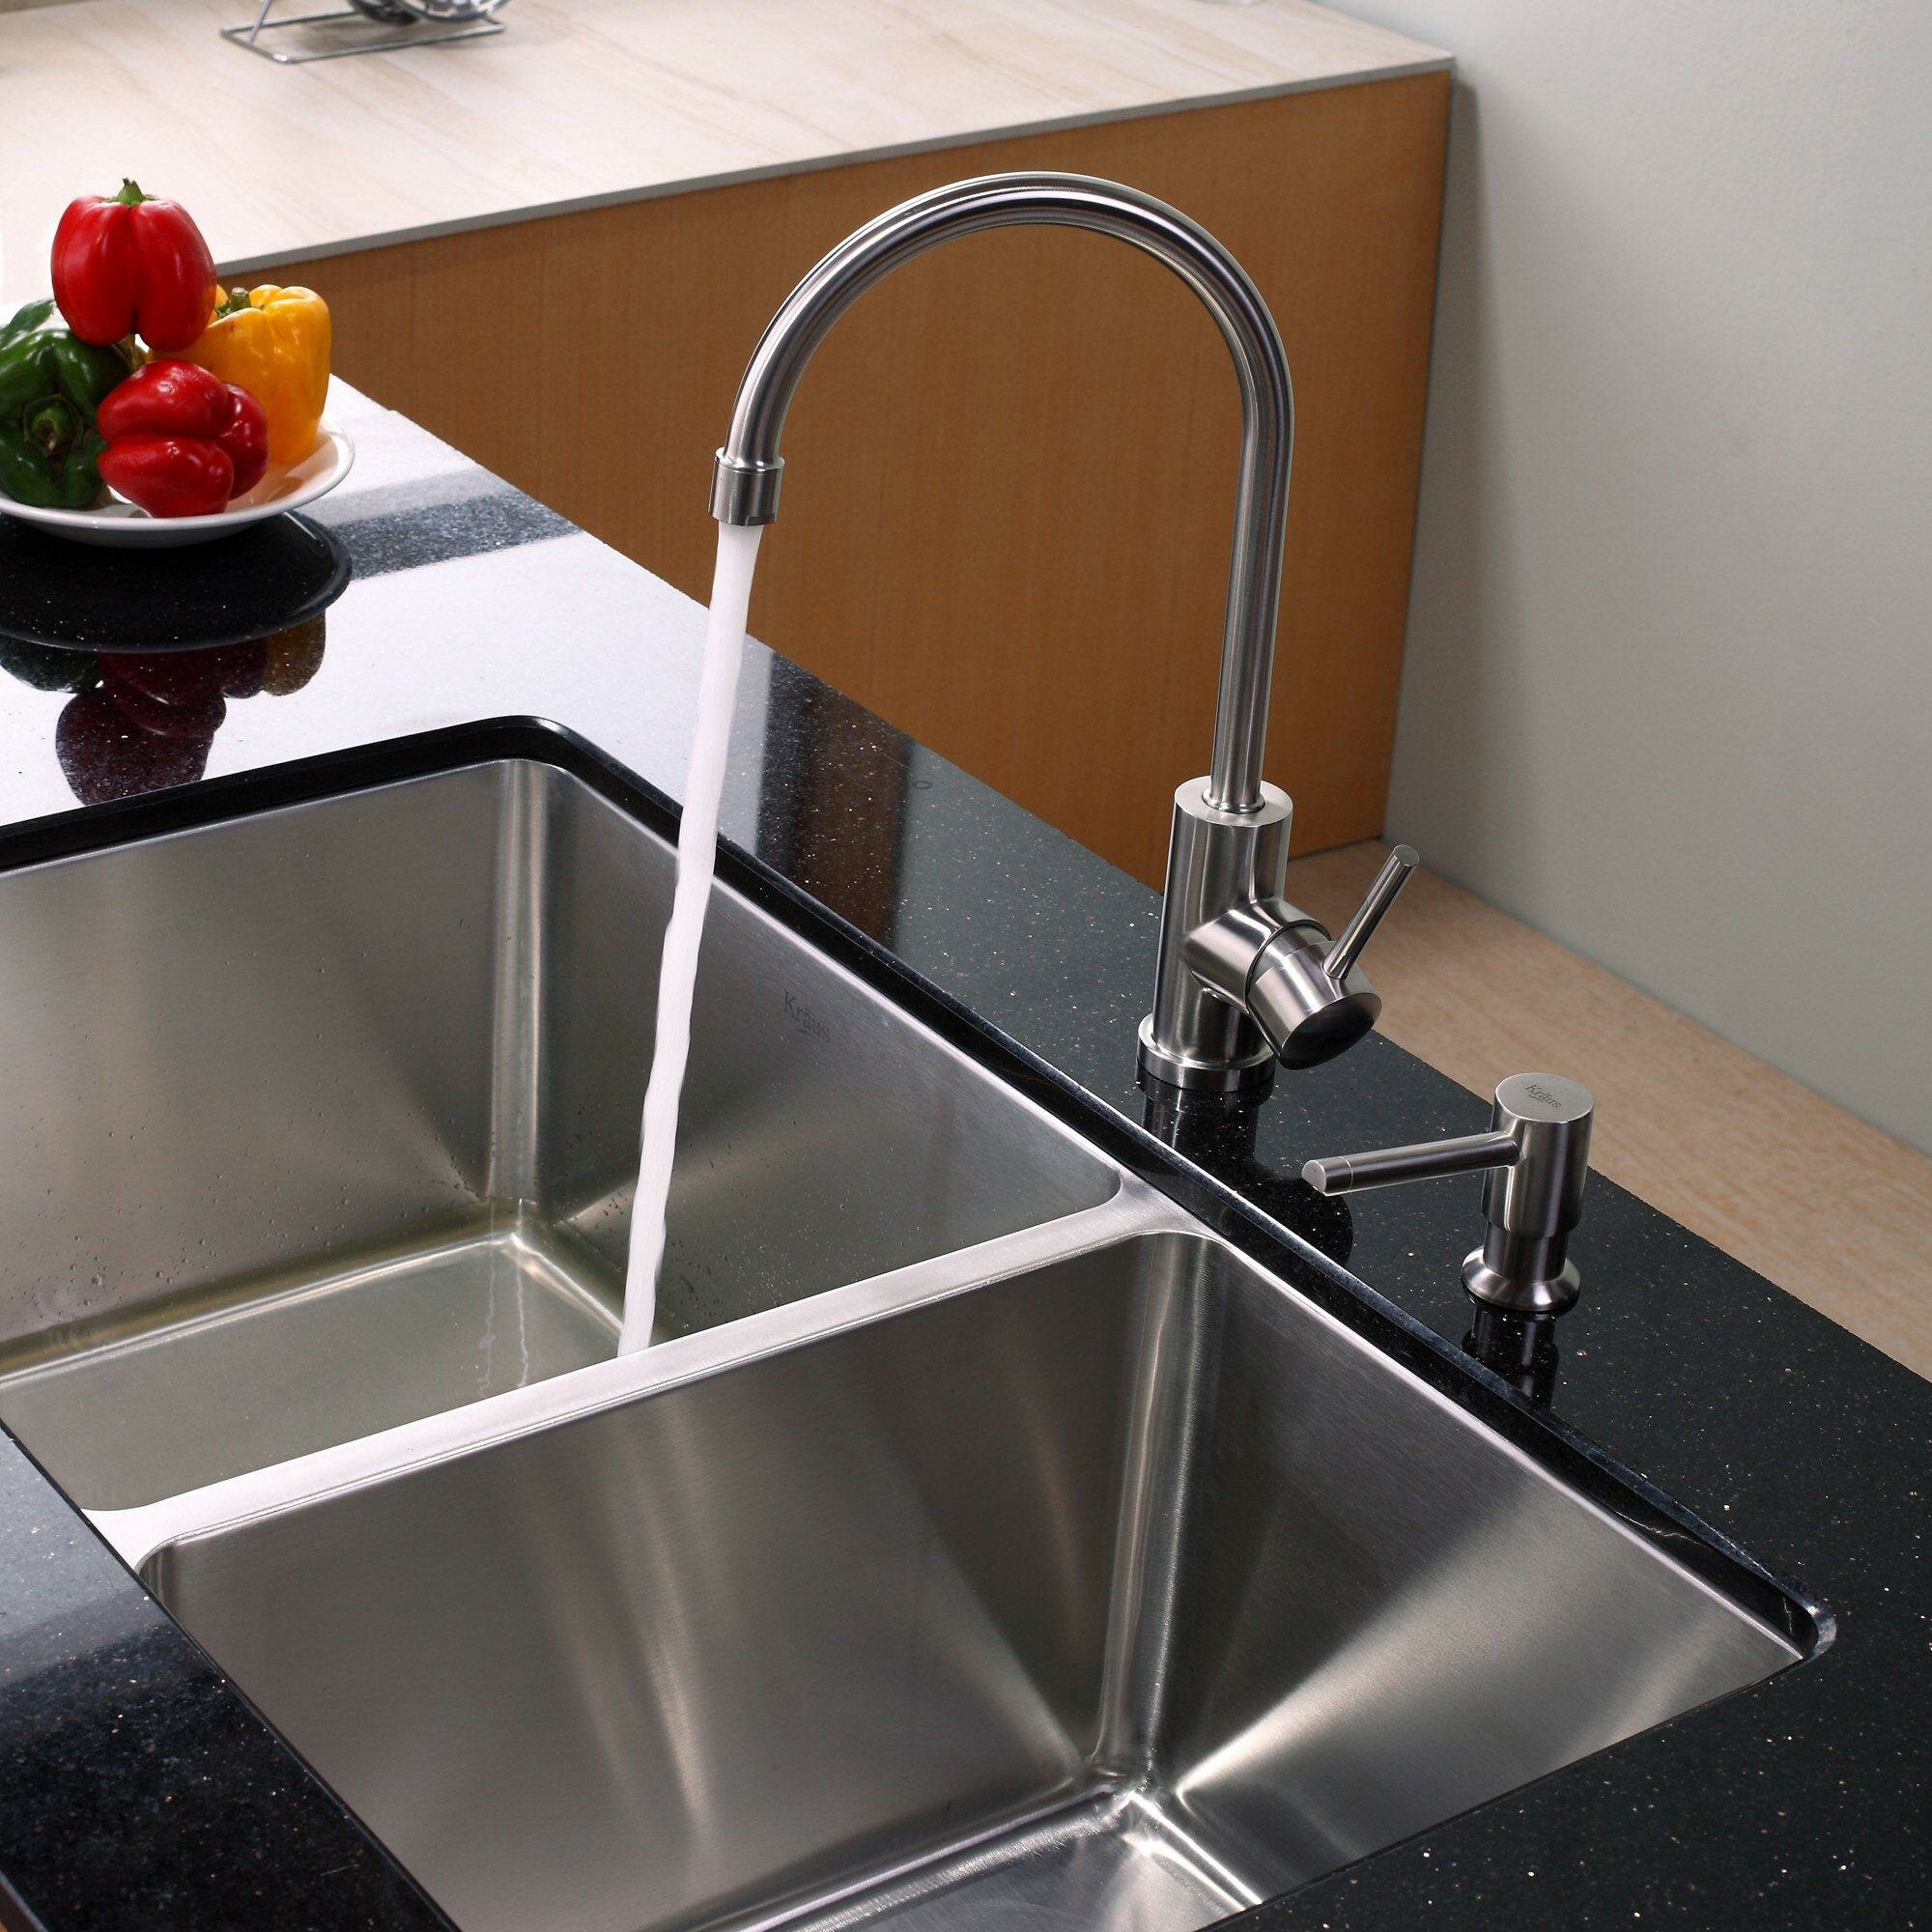 Kraus X 19 X 10 Undermount Double Bowl 70 30 Kitchen Sink With Kitchen Faucet And Soap